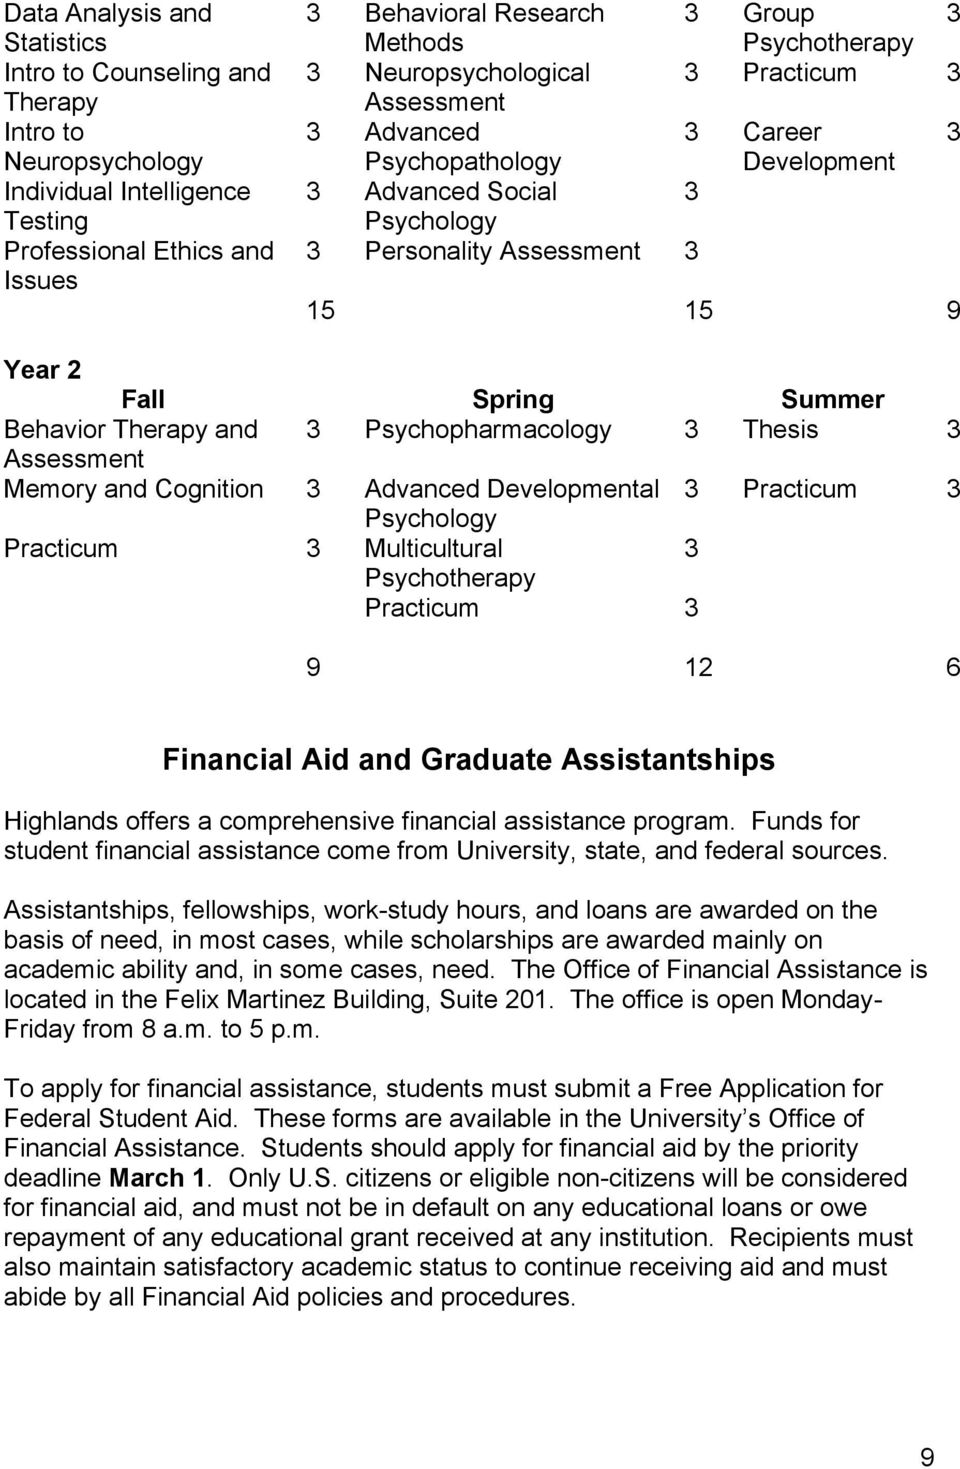 Summer Behavior Therapy and 3 Psychopharmacology 3 Thesis 3 Assessment Memory and Cognition 3 Advanced Developmental 3 Practicum 3 Psychology Practicum 3 Multicultural 3 Psychotherapy Practicum 3 9